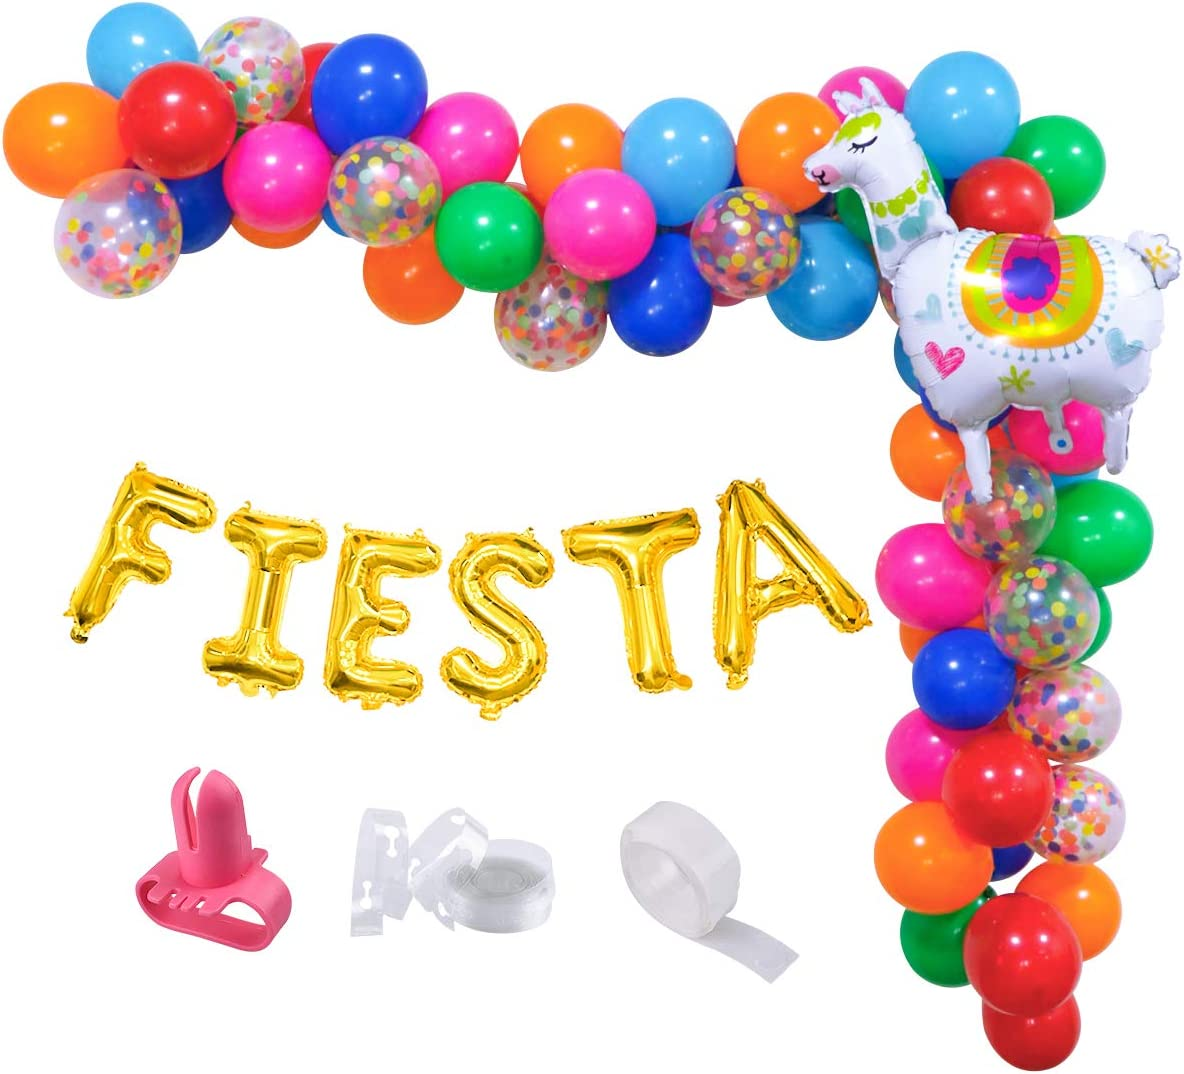 Fiesta Balloon Garland Arch Kit,Mexican Cinco de Mayo Baby Shower Balloon Decoration Set,Colorful Confetti Balloons with Llama Foil Balloons for Fiesta Birthday Party,Coco Party,Taco Party Decor